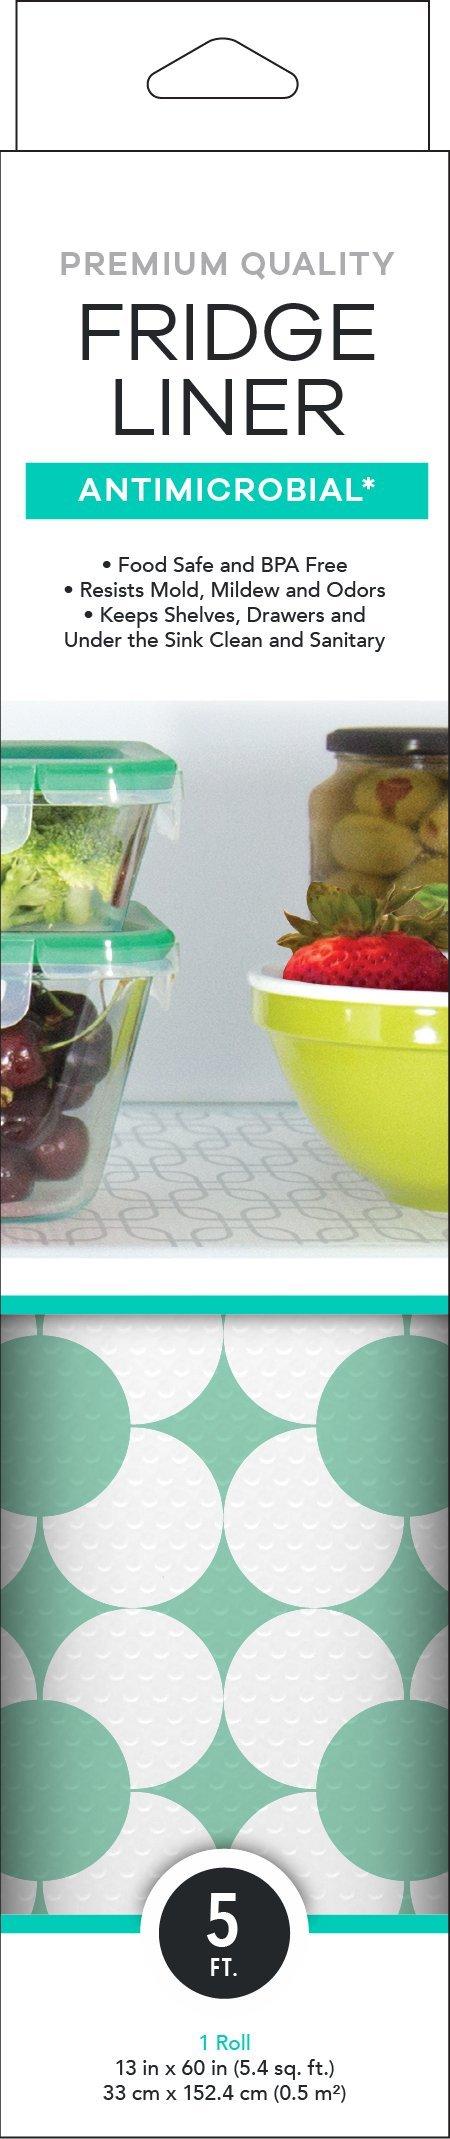 Mindfull Products Cut To Fit Fridge Shelf Liner, Antimicrobial, 13'' x 60'', Teal Squares